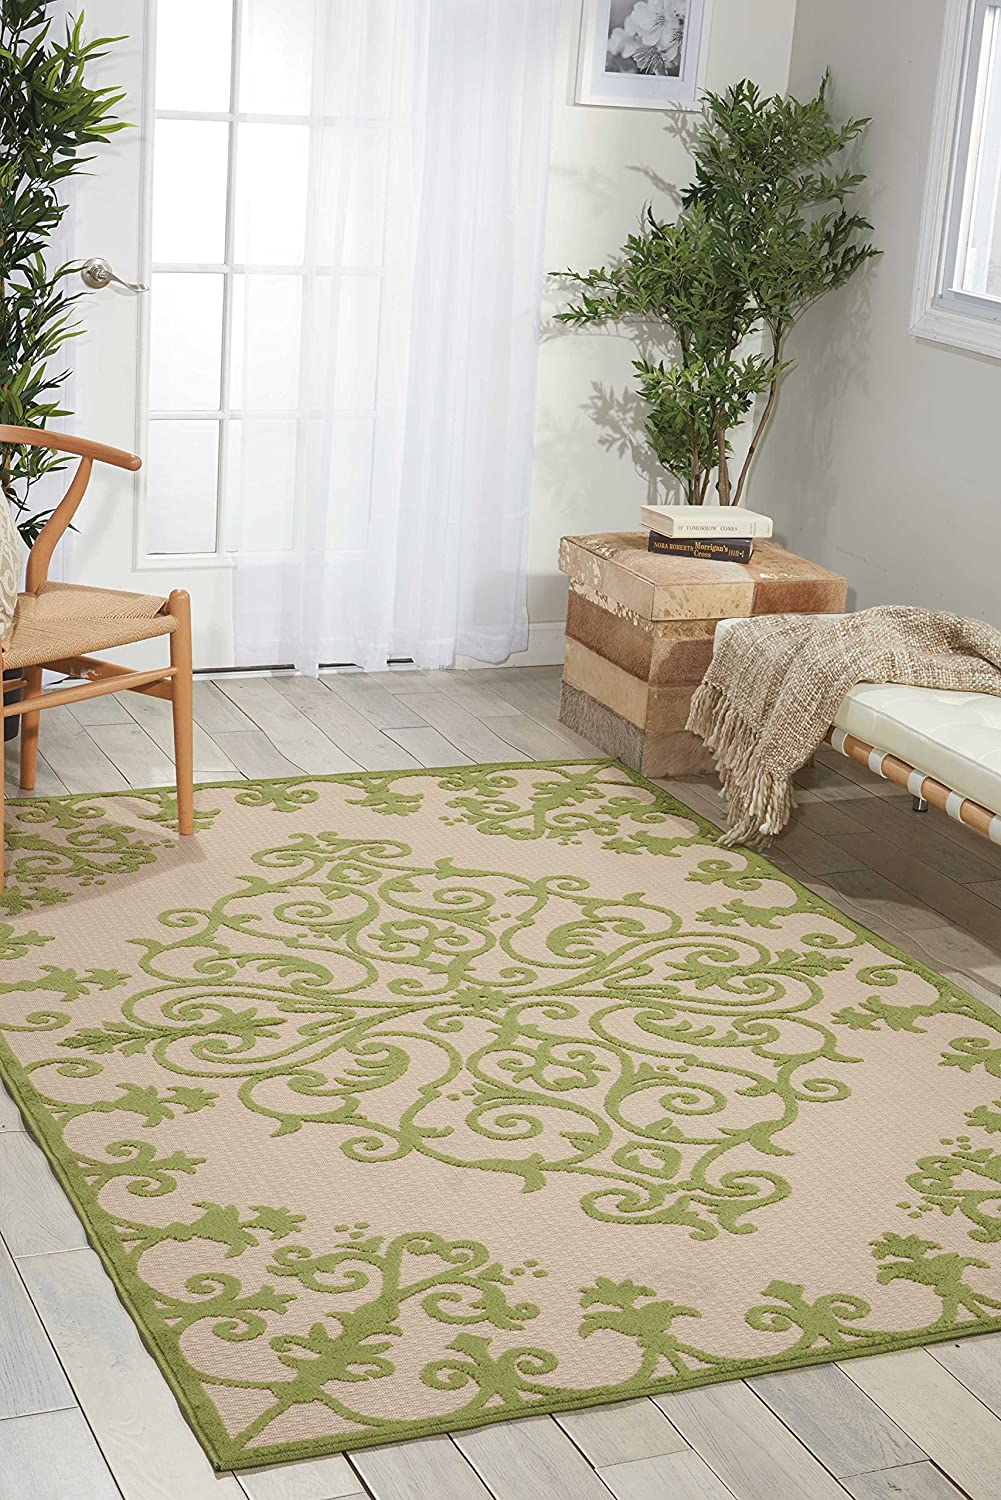 Nourison Aloha Green Rectangle Area Rug, 3-Feet 6-Inches by 5-Feet 6-Inches (3'6